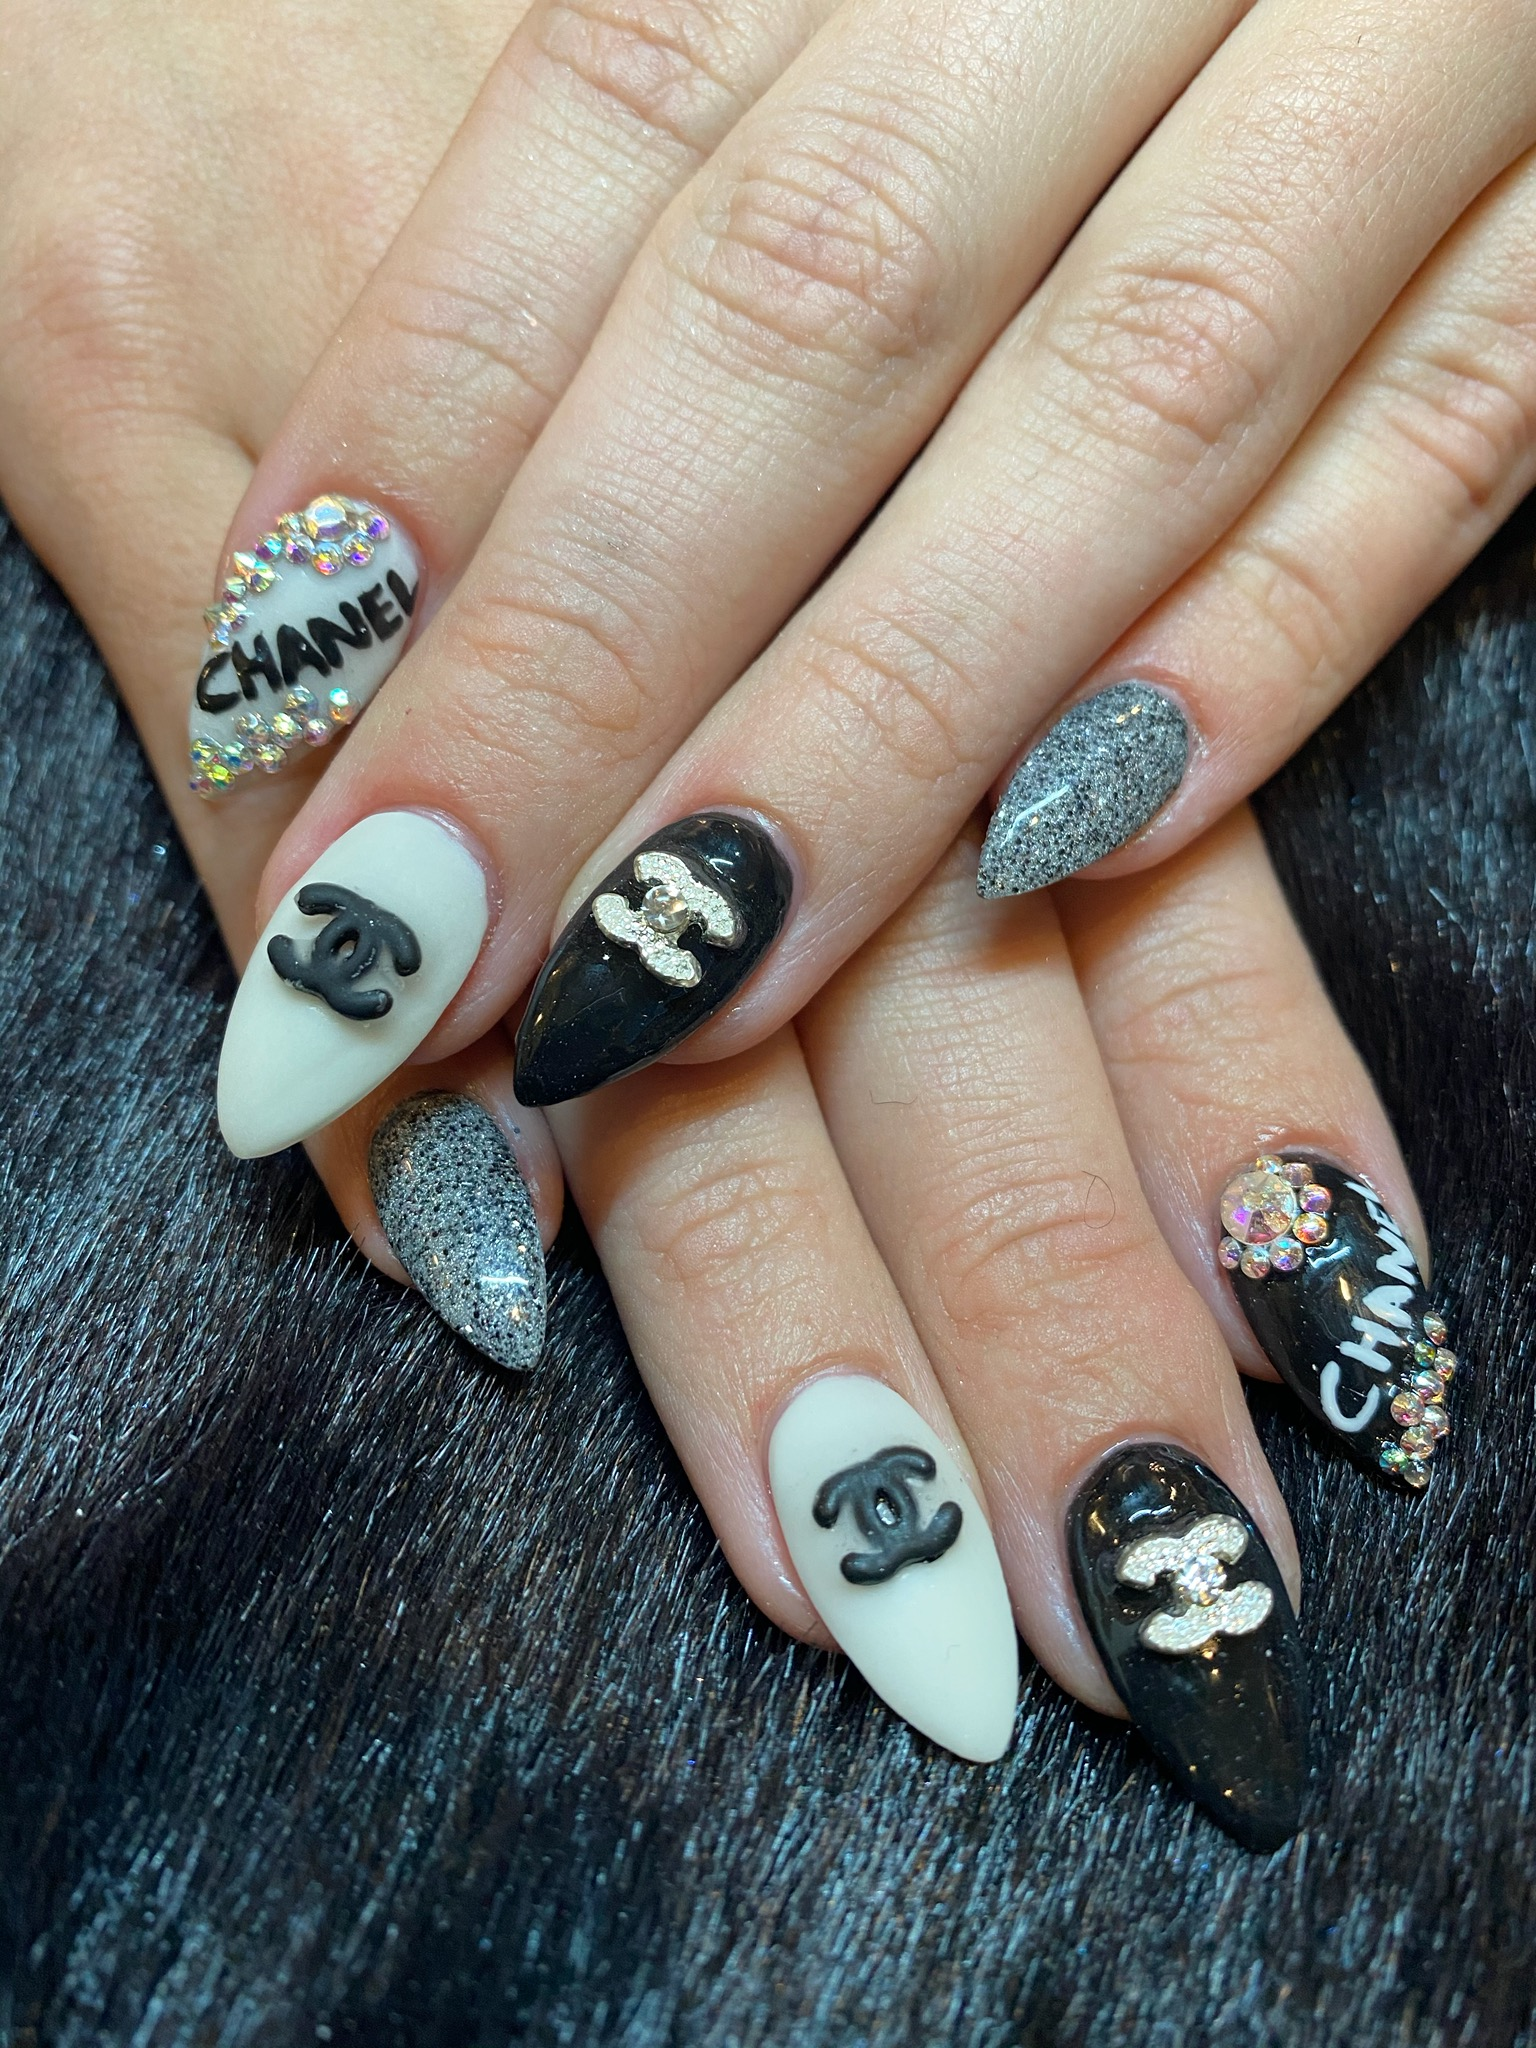 ALL THINGS NAILS!